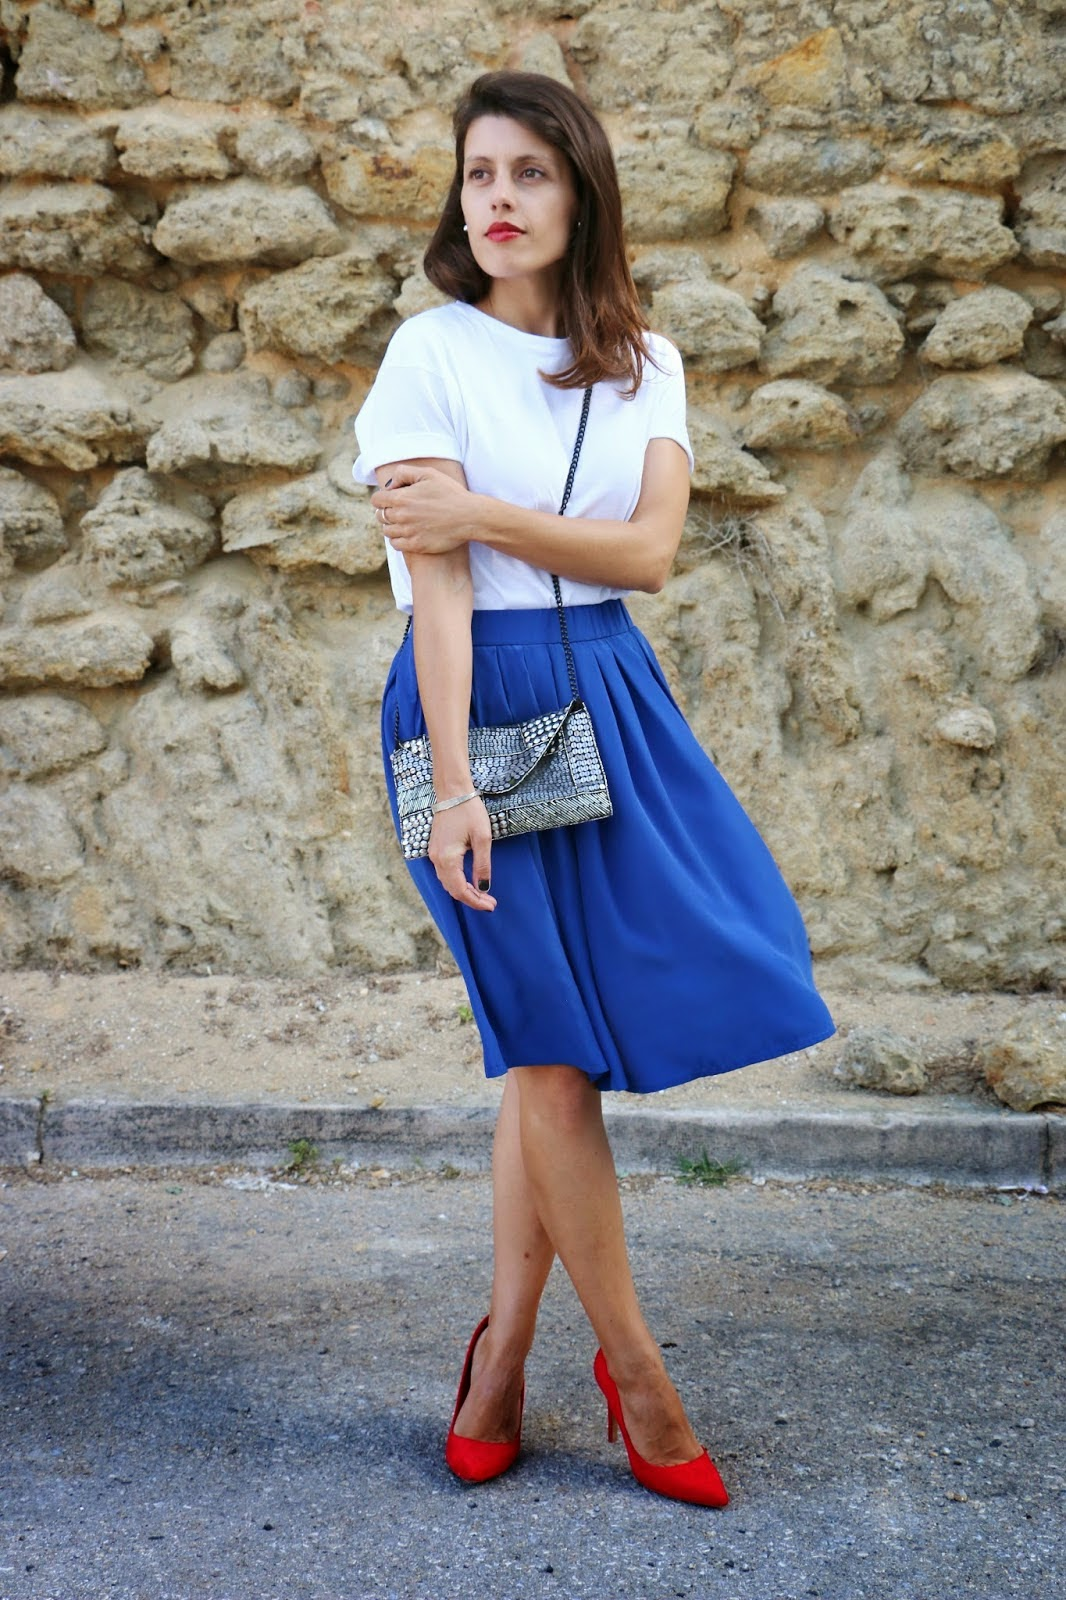 http://ilovefitametrica.blogspot.pt/2014/07/red-lips-red-shoes.html